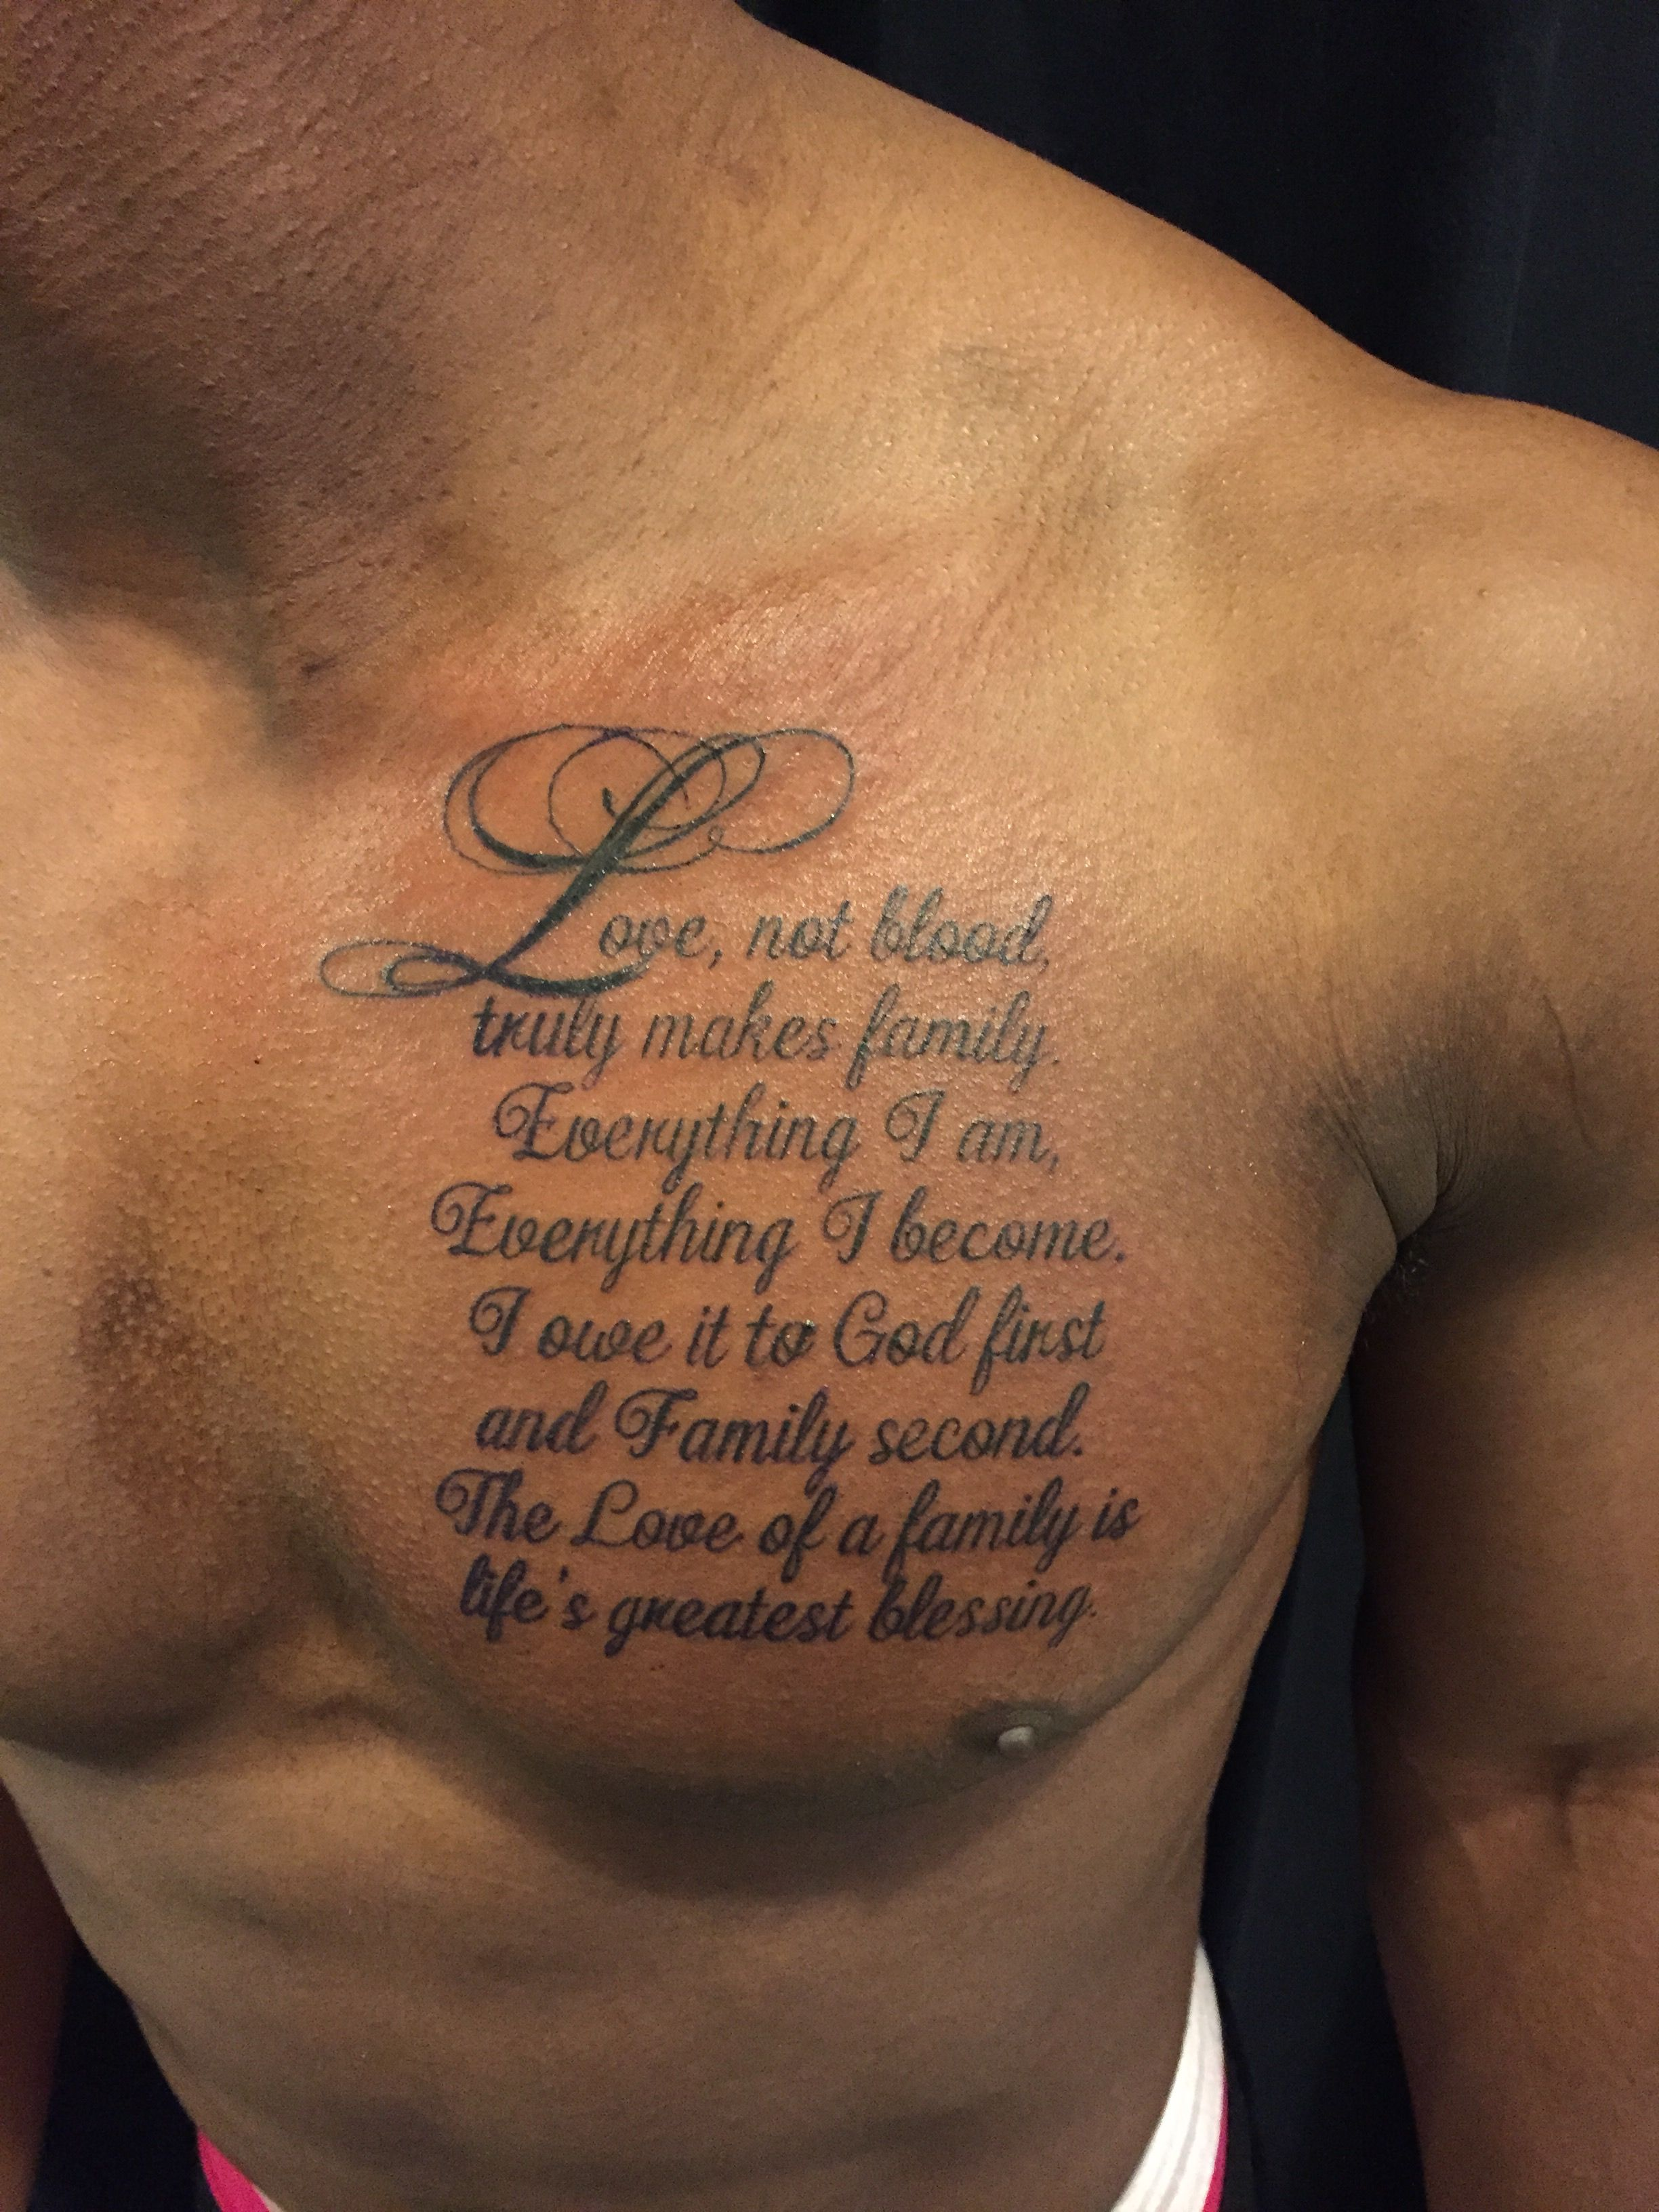 Script On Chest Tattoo Artist Nina Dreamworx Ink 3883 Rutherford Rd Unit 11 Vaughan On L4l 9r8 905 605 2663 Dr Chest Tattoo Men Verse Tattoos Chest Tattoo